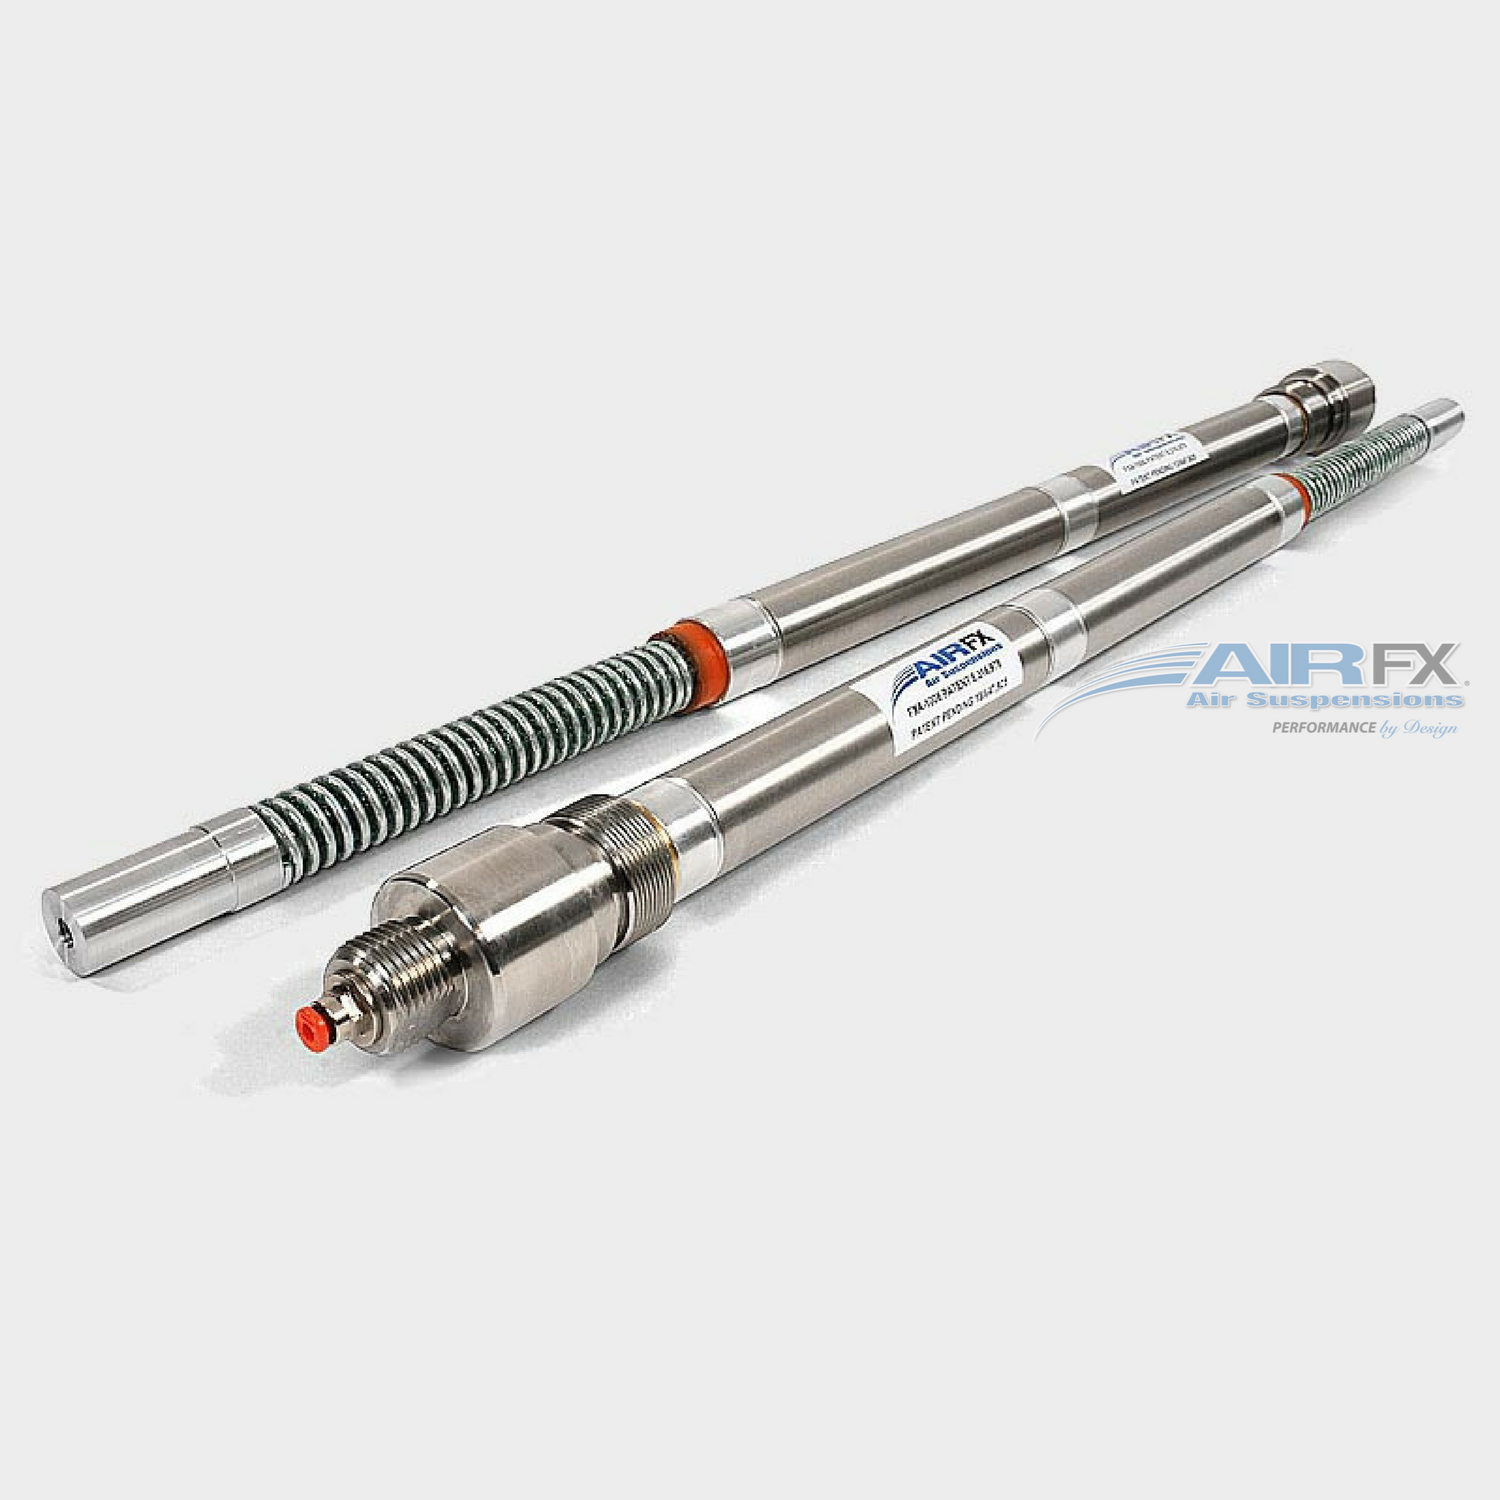 41mm Front Cartridge Pair with HHI Extensions for 30 inch long neck or 32 inch short neck wheel